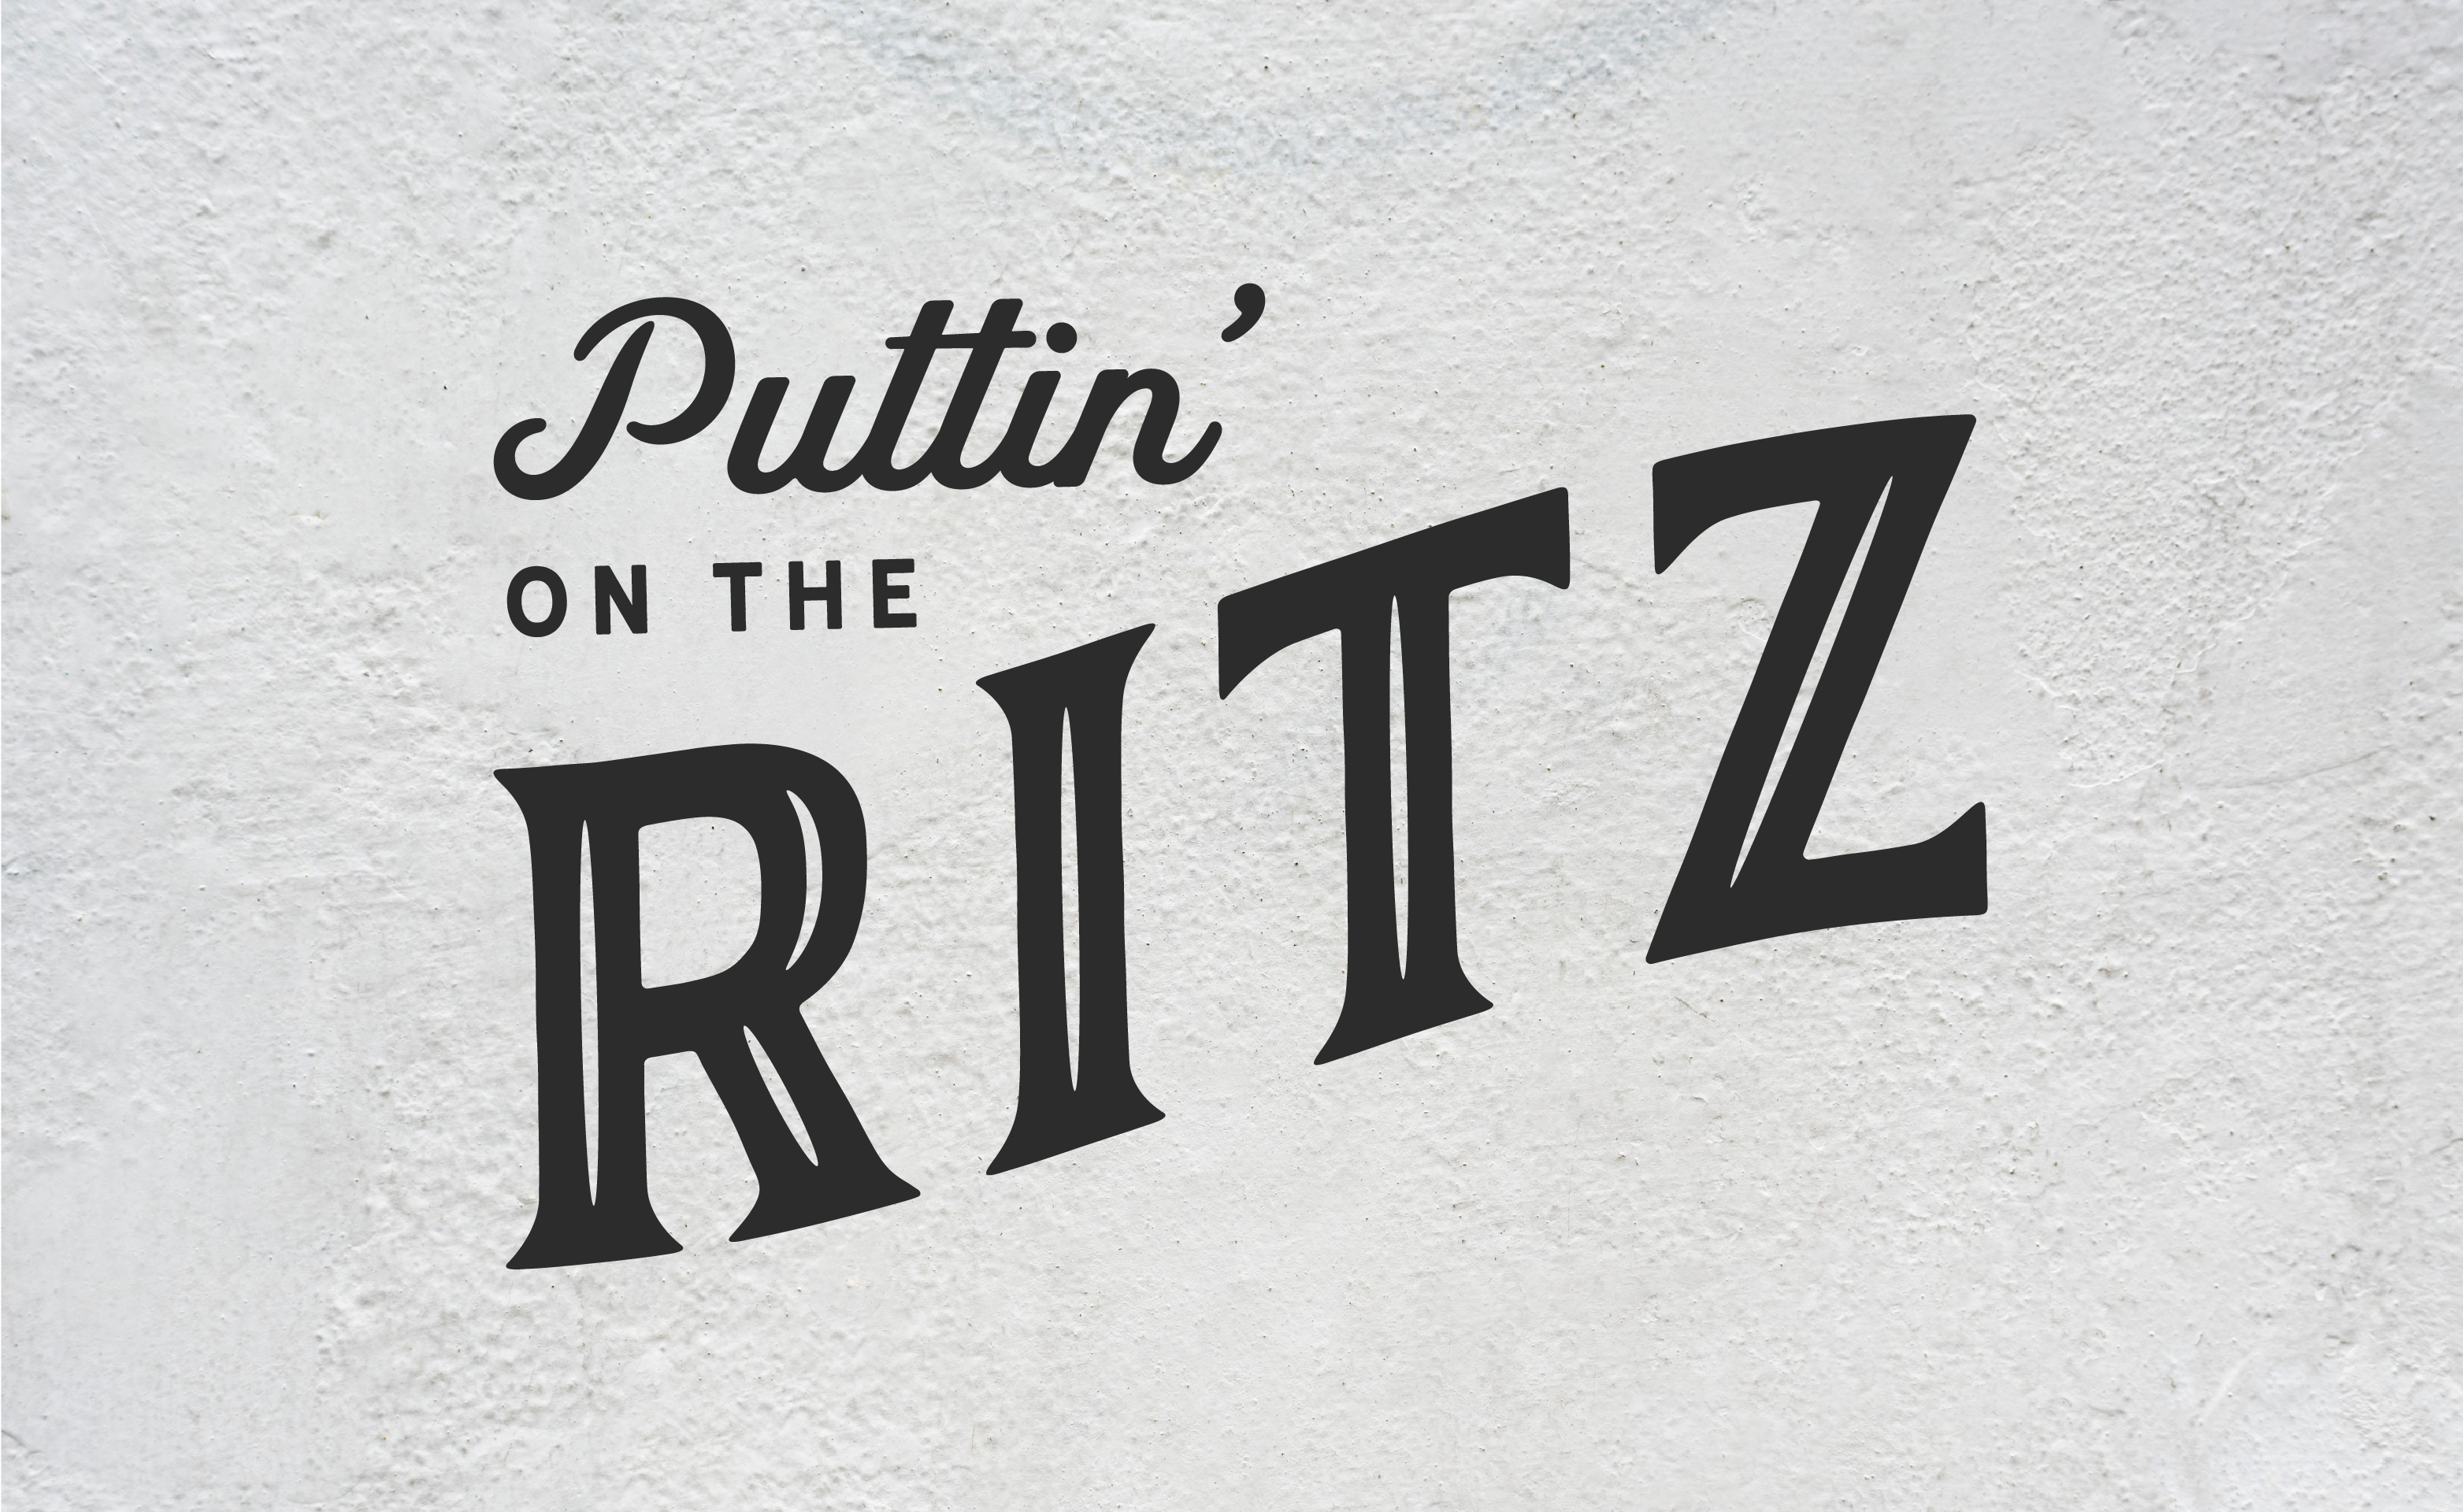 /uploads/puttin-on-the-ritz-5.jpg